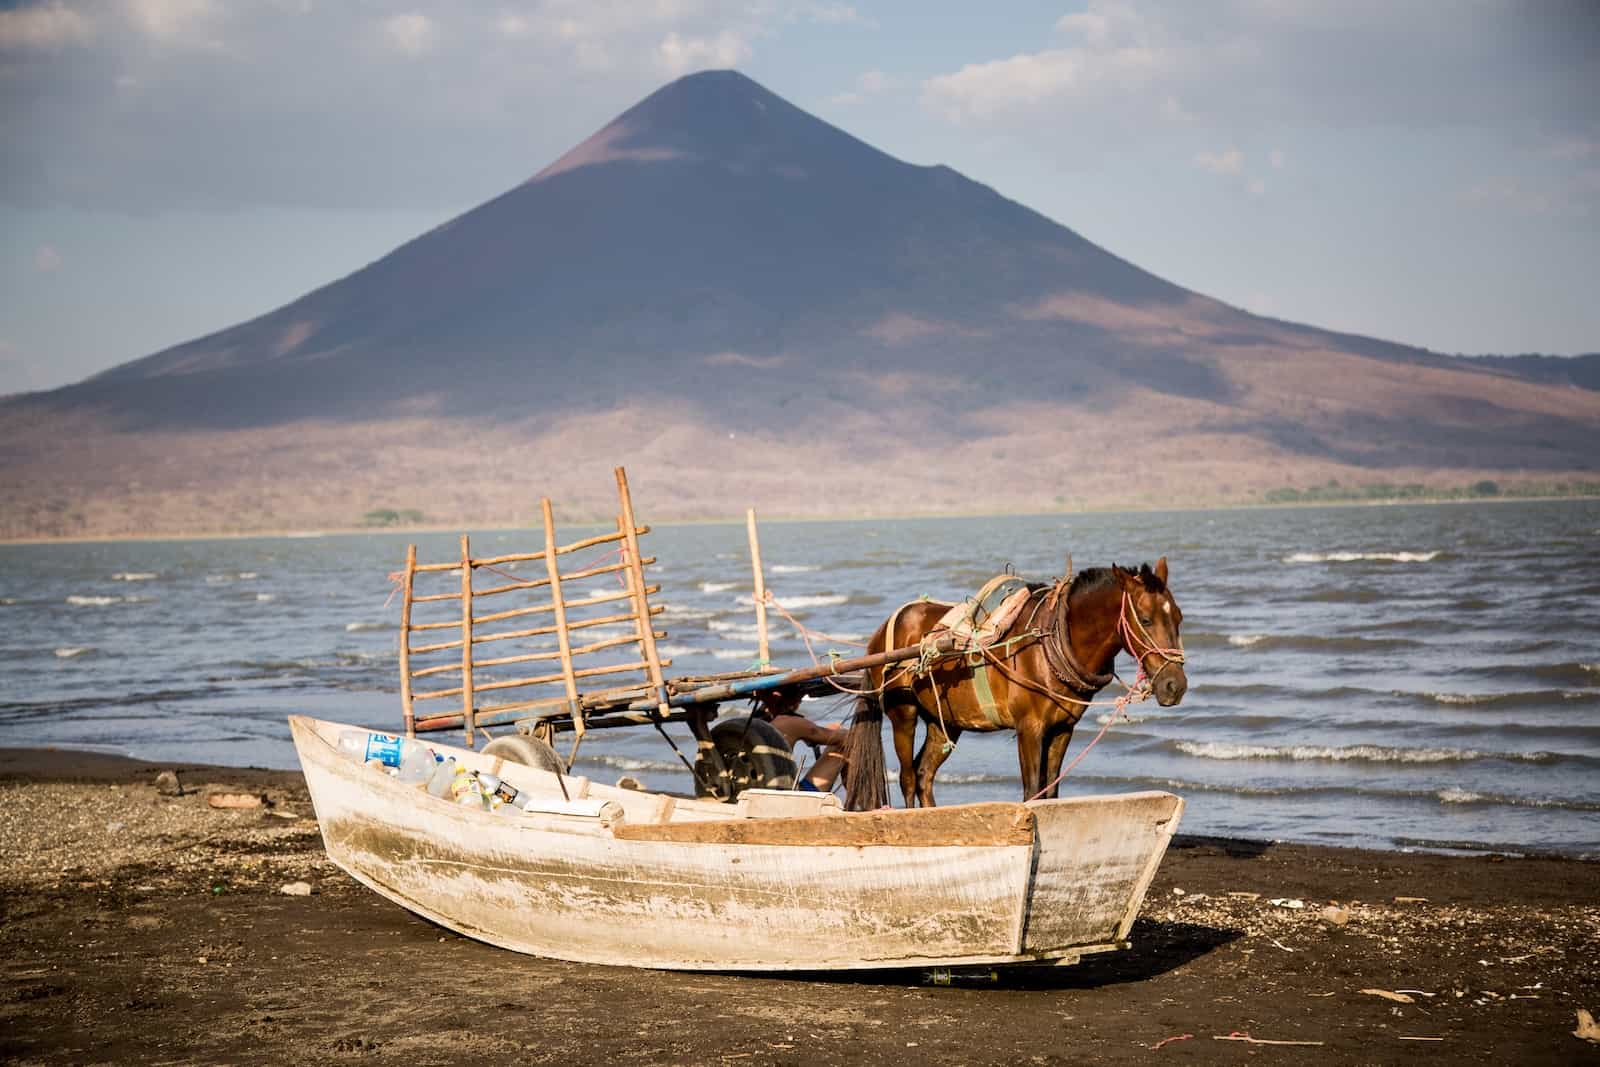 A horse stands next to a boat in front of a lake and volcano where tourism is down after Nicaragua unrest.